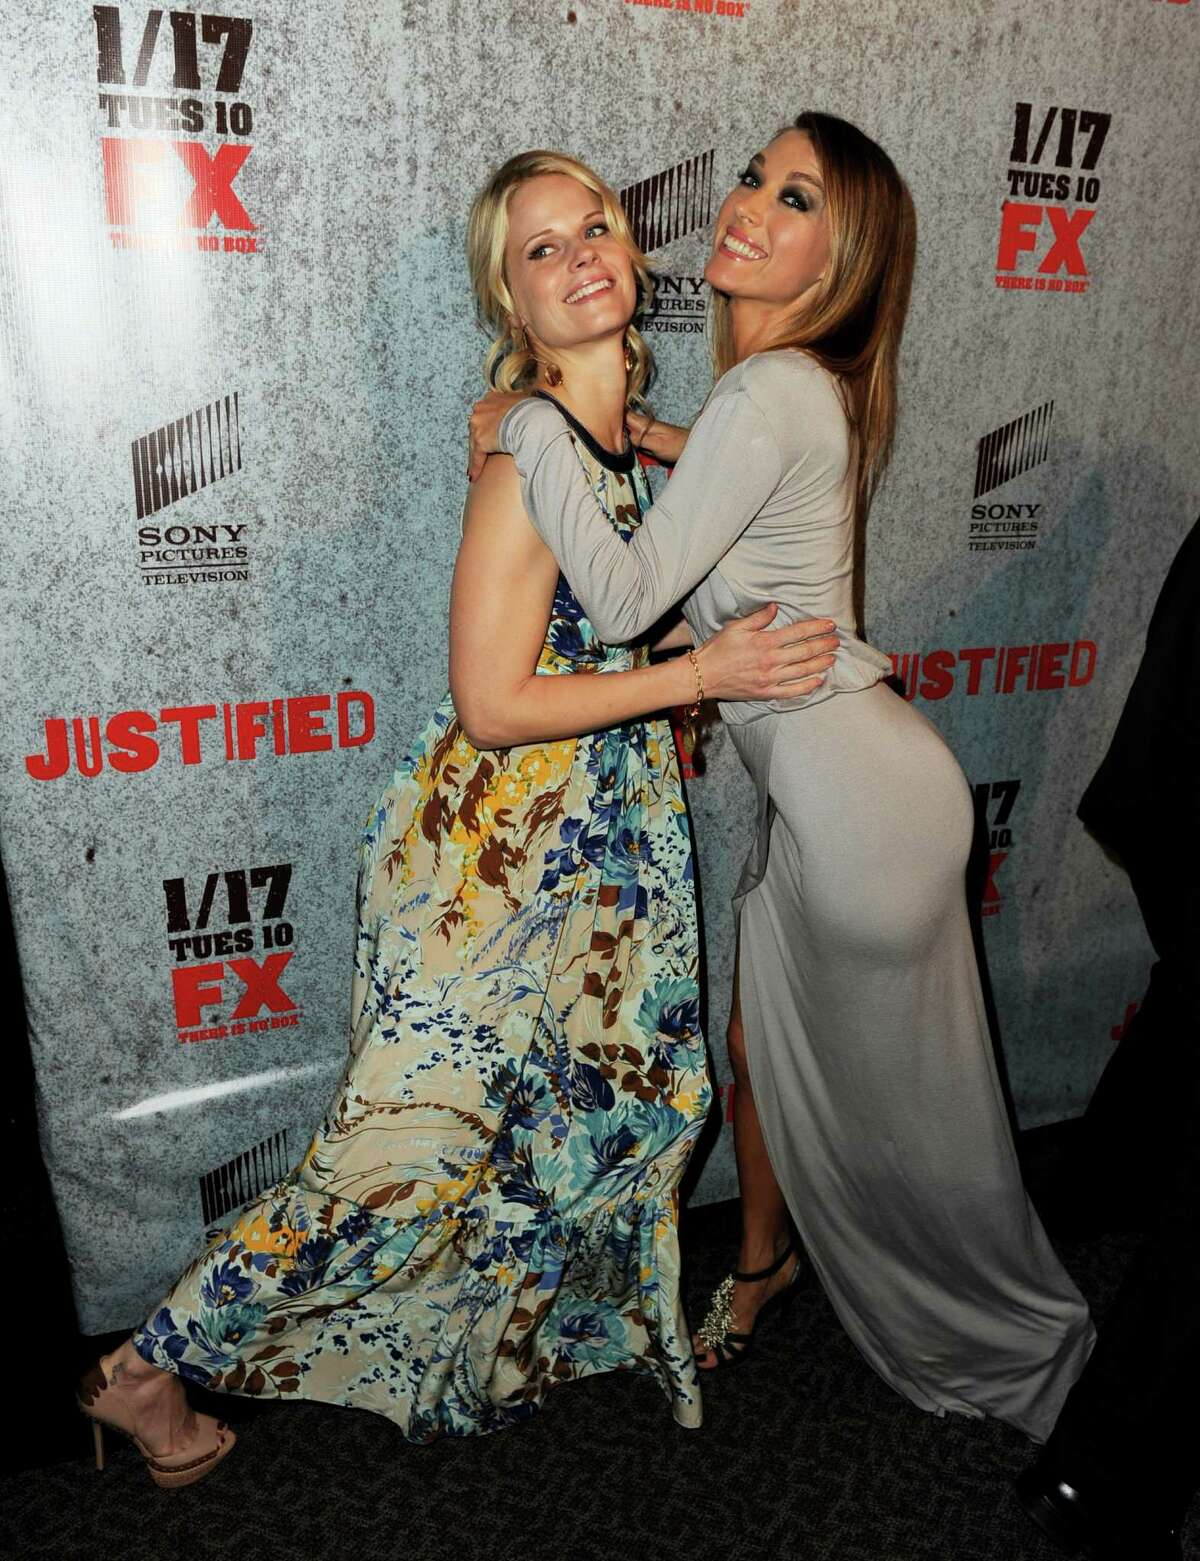 Actress Joelle Carter, aka Ava Crowder, pictured with costar Natalie Zea.